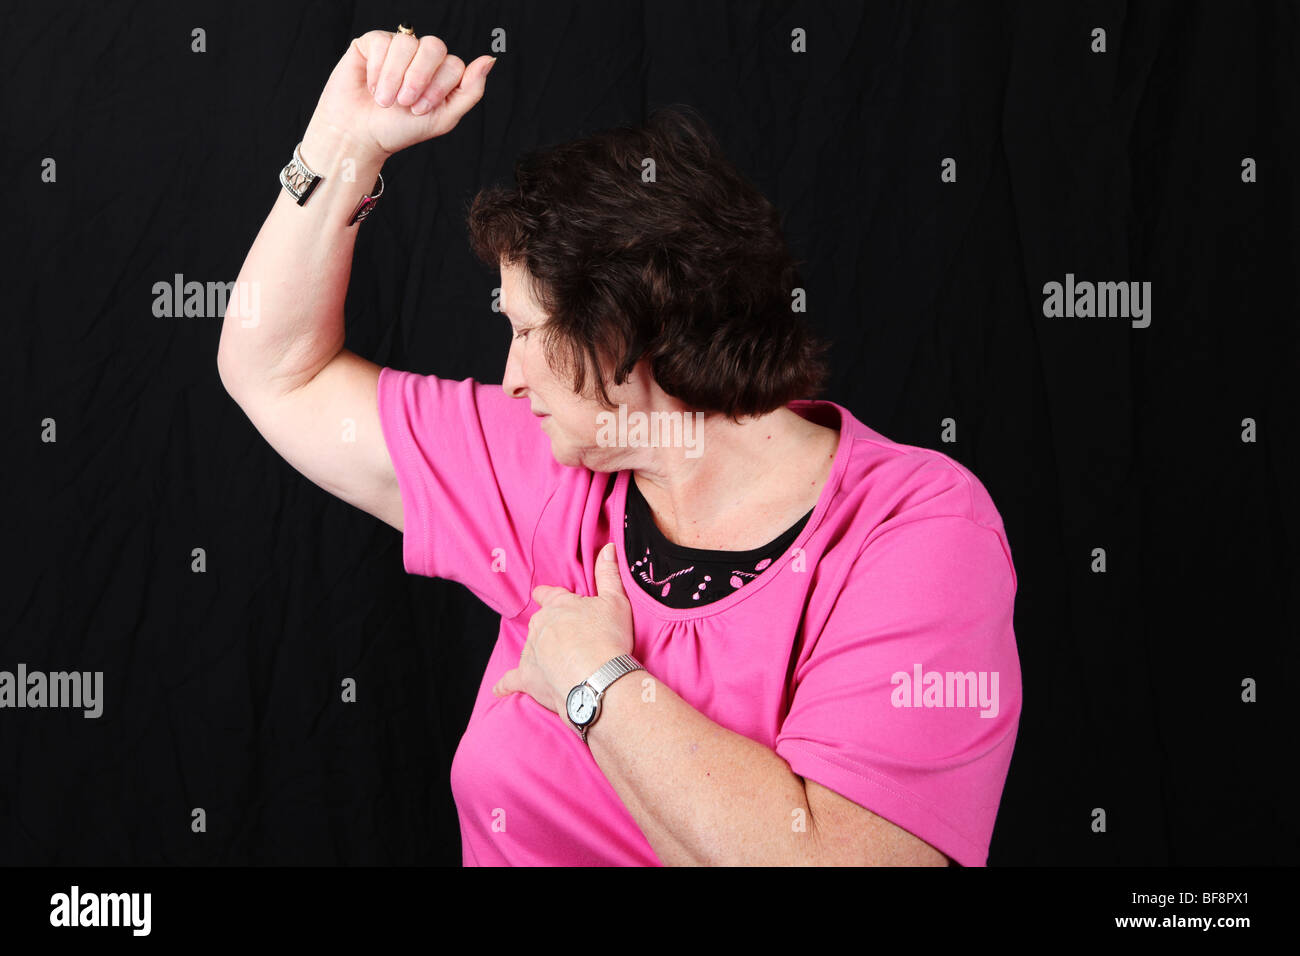 Late middle aged woman 50s 60s smelling own armpit with strong body odor odour poor personal hygiene unpleasant - Stock Image